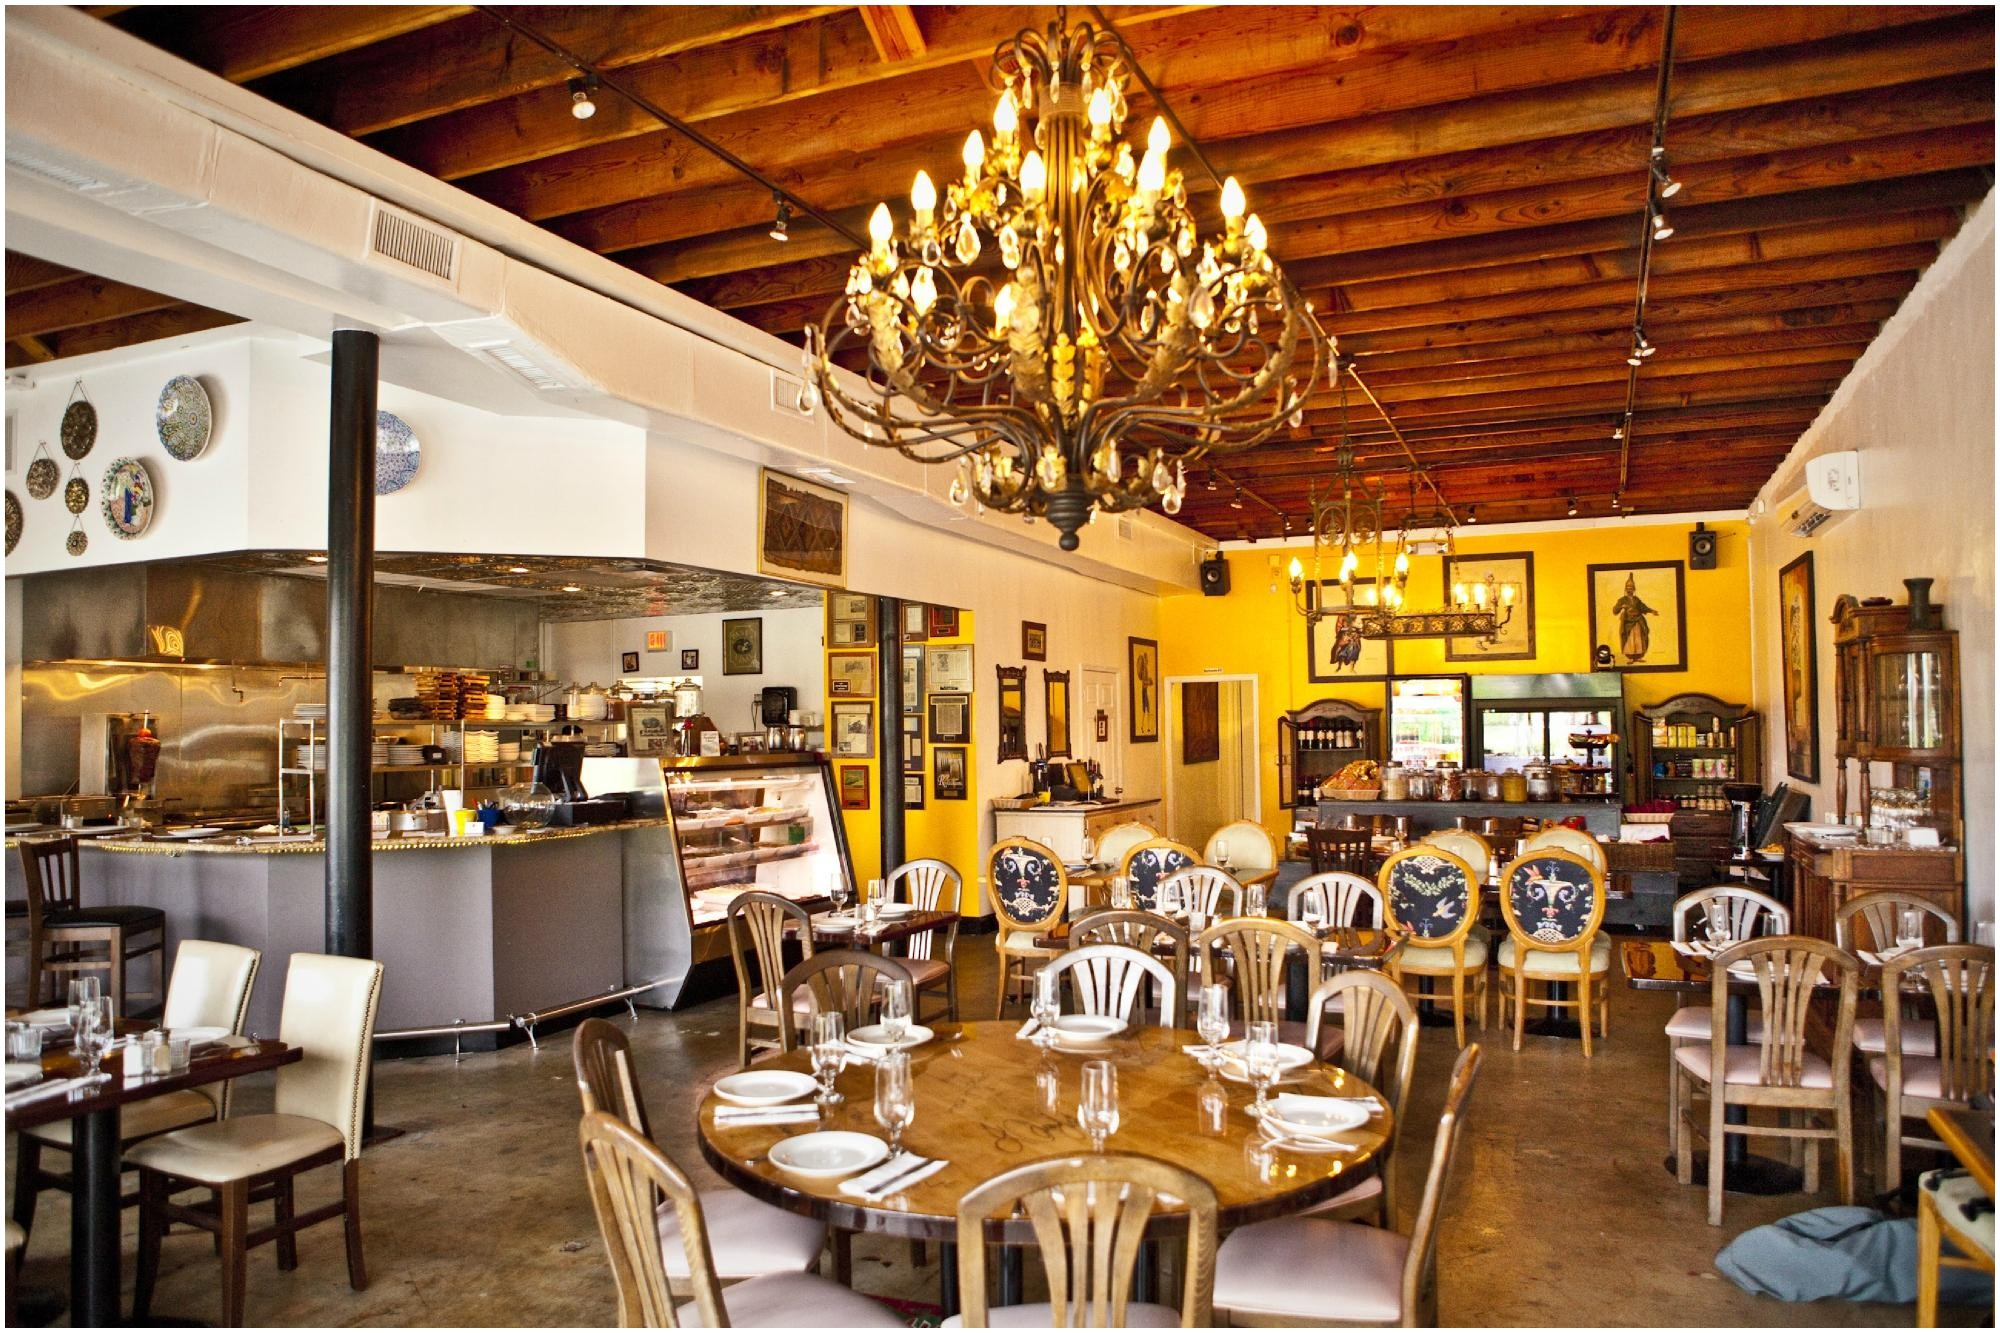 Agora Mediterranean Kitchen · Agora Mediterranean Kitchen 1 of 542 Restaurants in West Palm Beach